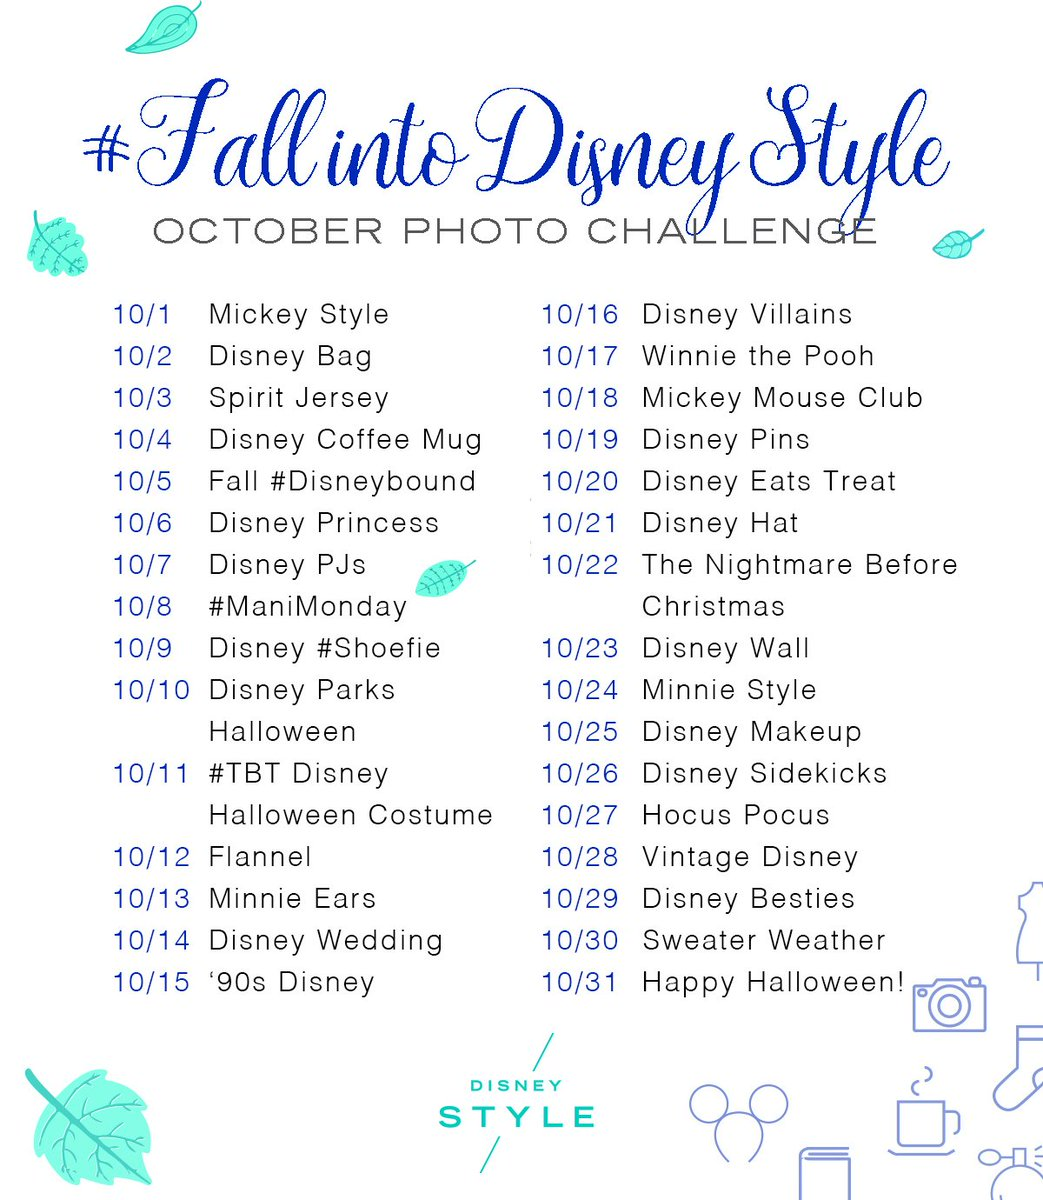 2bd09211ffd See the prompts   find out how you can participate  https   style.disney .com living 2018 09 29 fall-into-disney-style-instagram-photo-challenge-2018   …